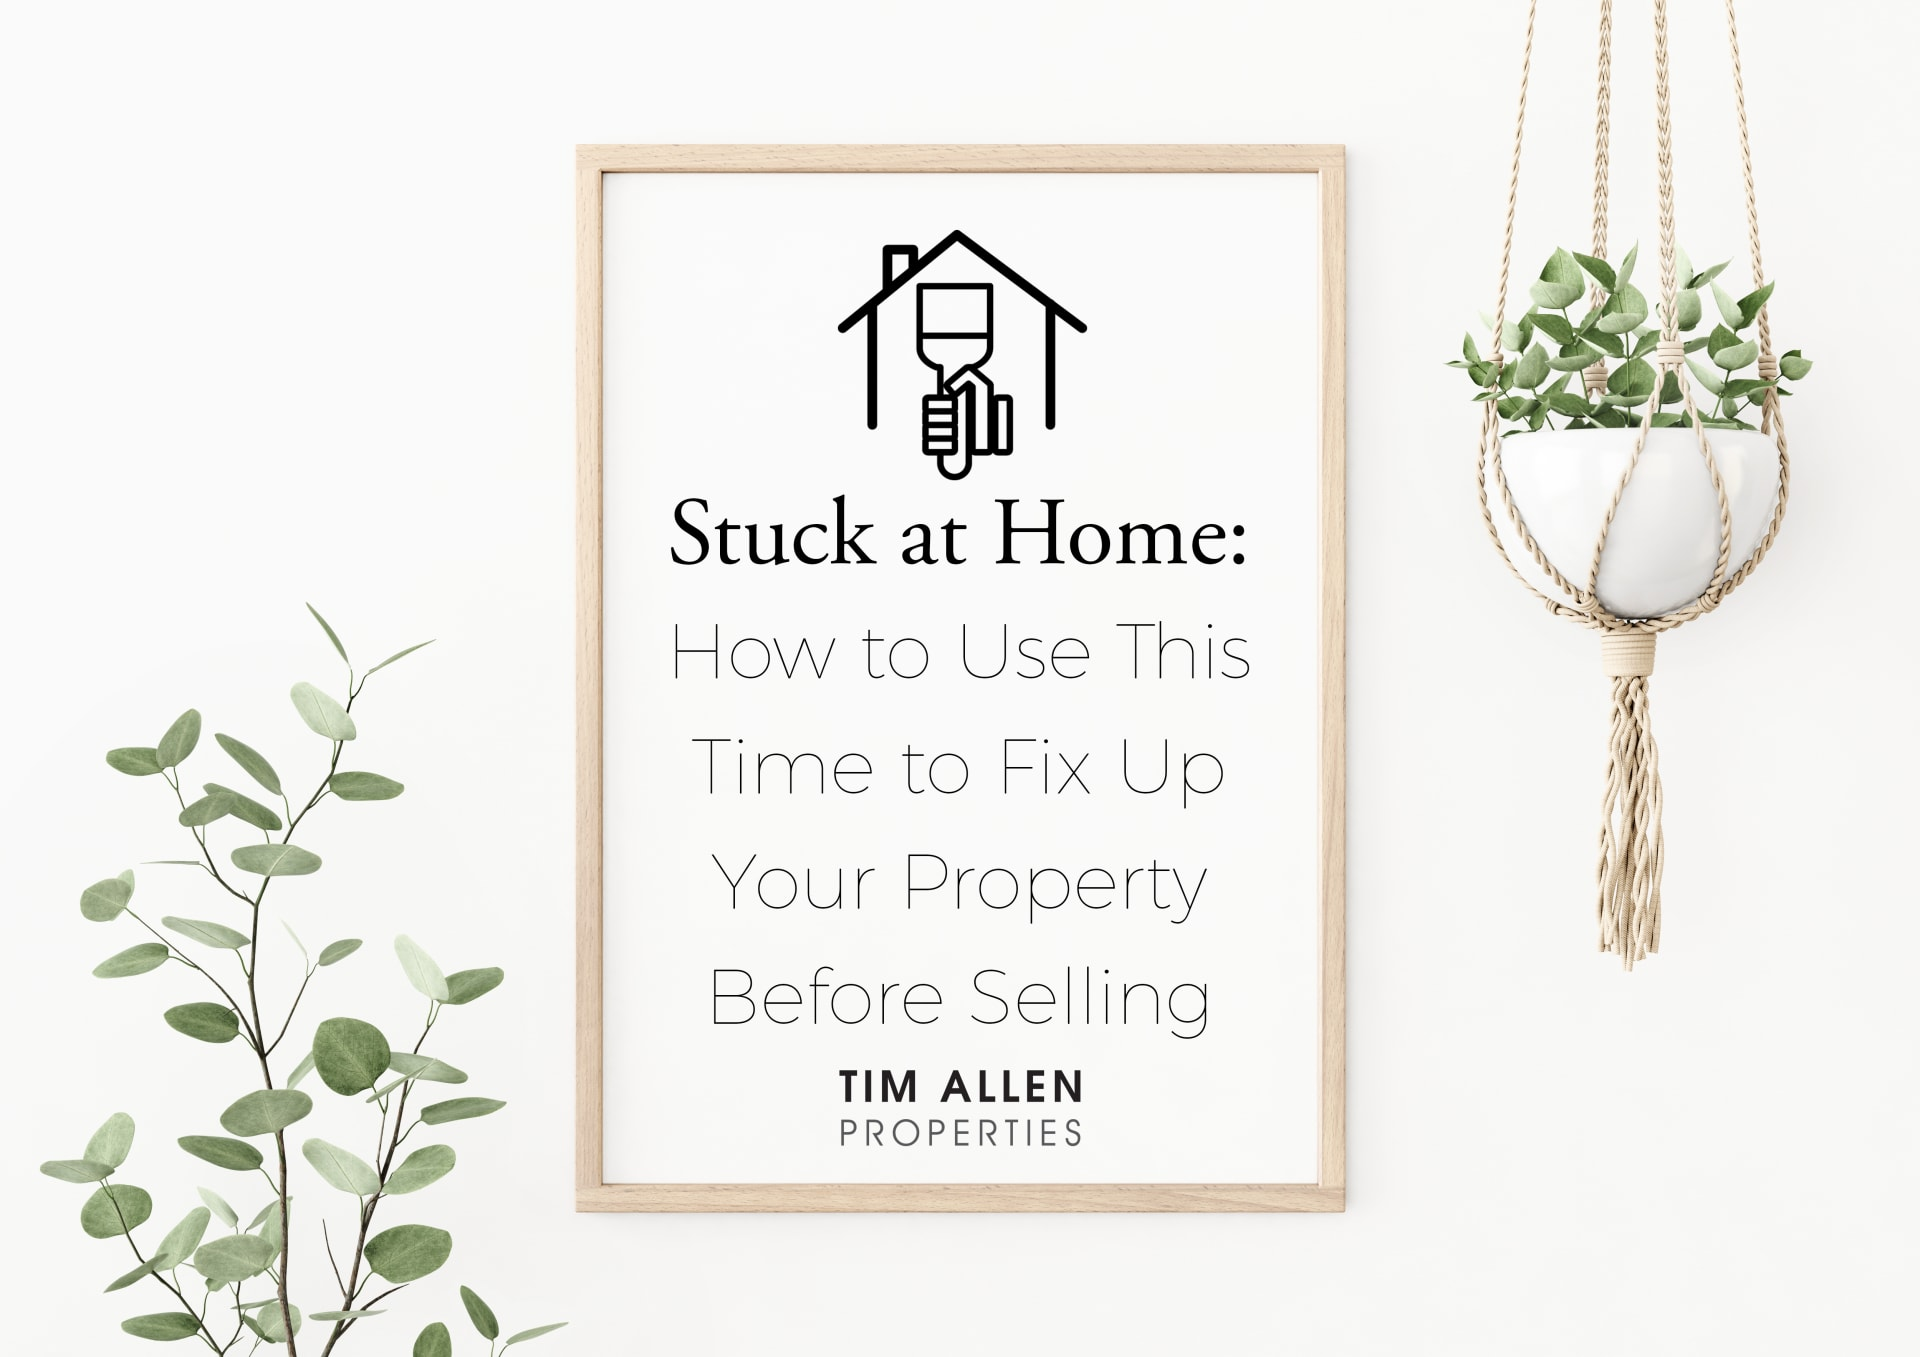 Stuck at Home: How to Use This Time to Fix Up Your Property Before Selling